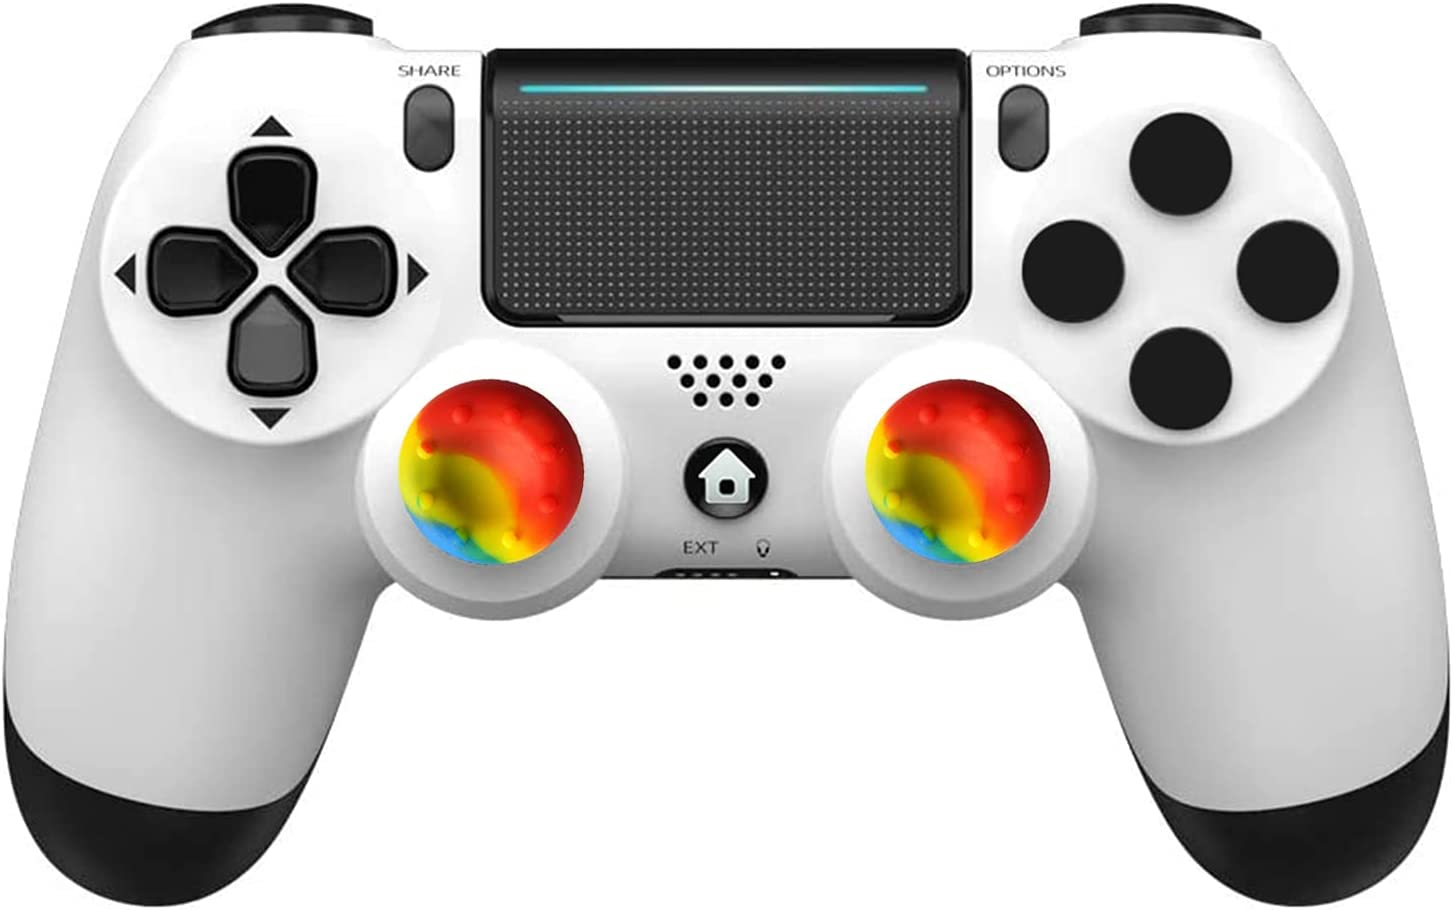 Wireless Controller for PS-4, Game Joystick for PS-4 Controller, with Dual Vibration/Audio Jack/Touch Pad/Six-axis Motion Control, for PS-4/Slim/Pro Console